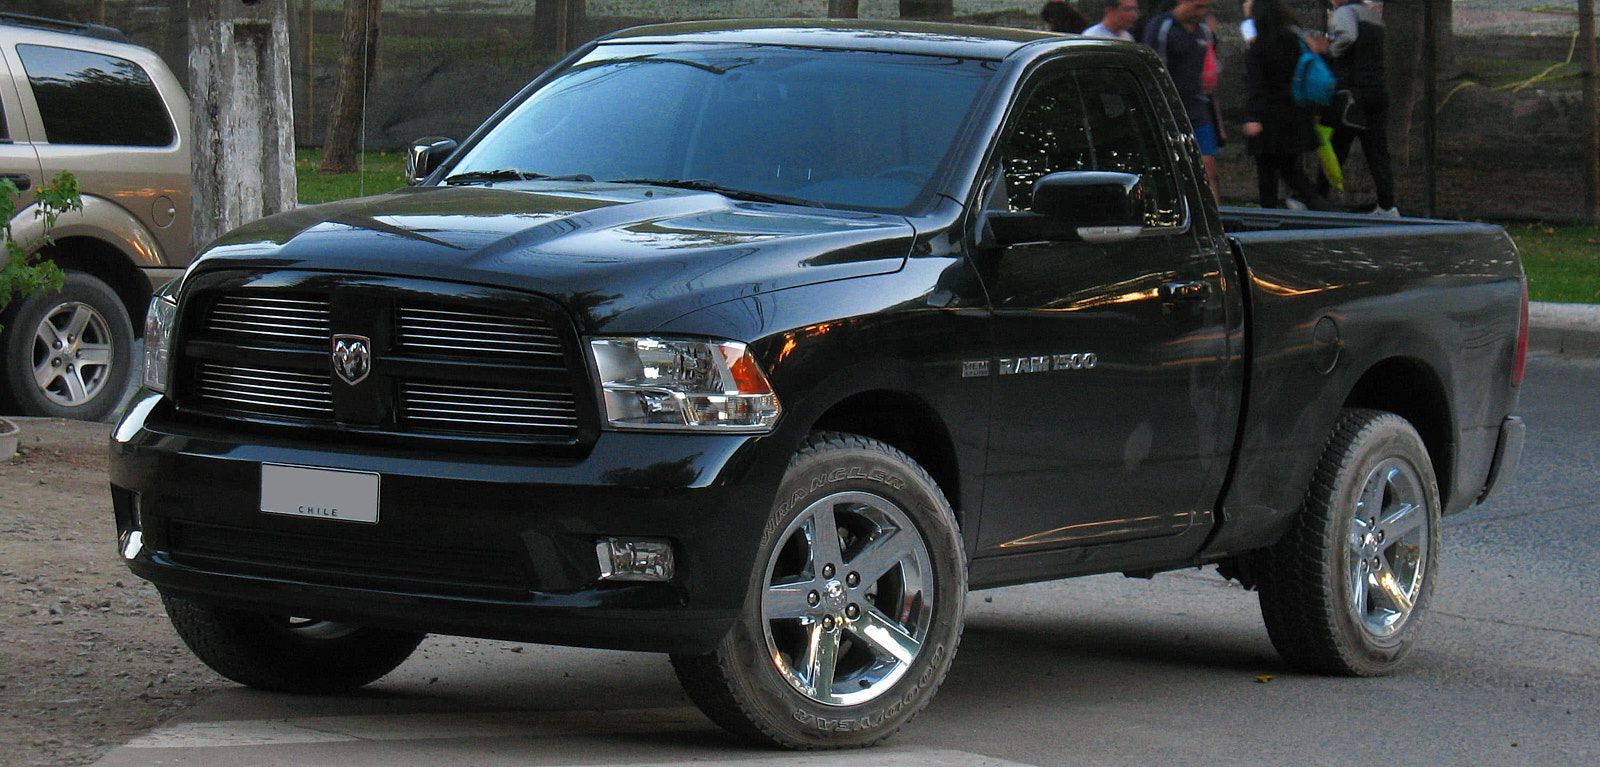 Best Tuner For 5 7 Hemi Ram 5 Products With Awesome Comparison Table 2021